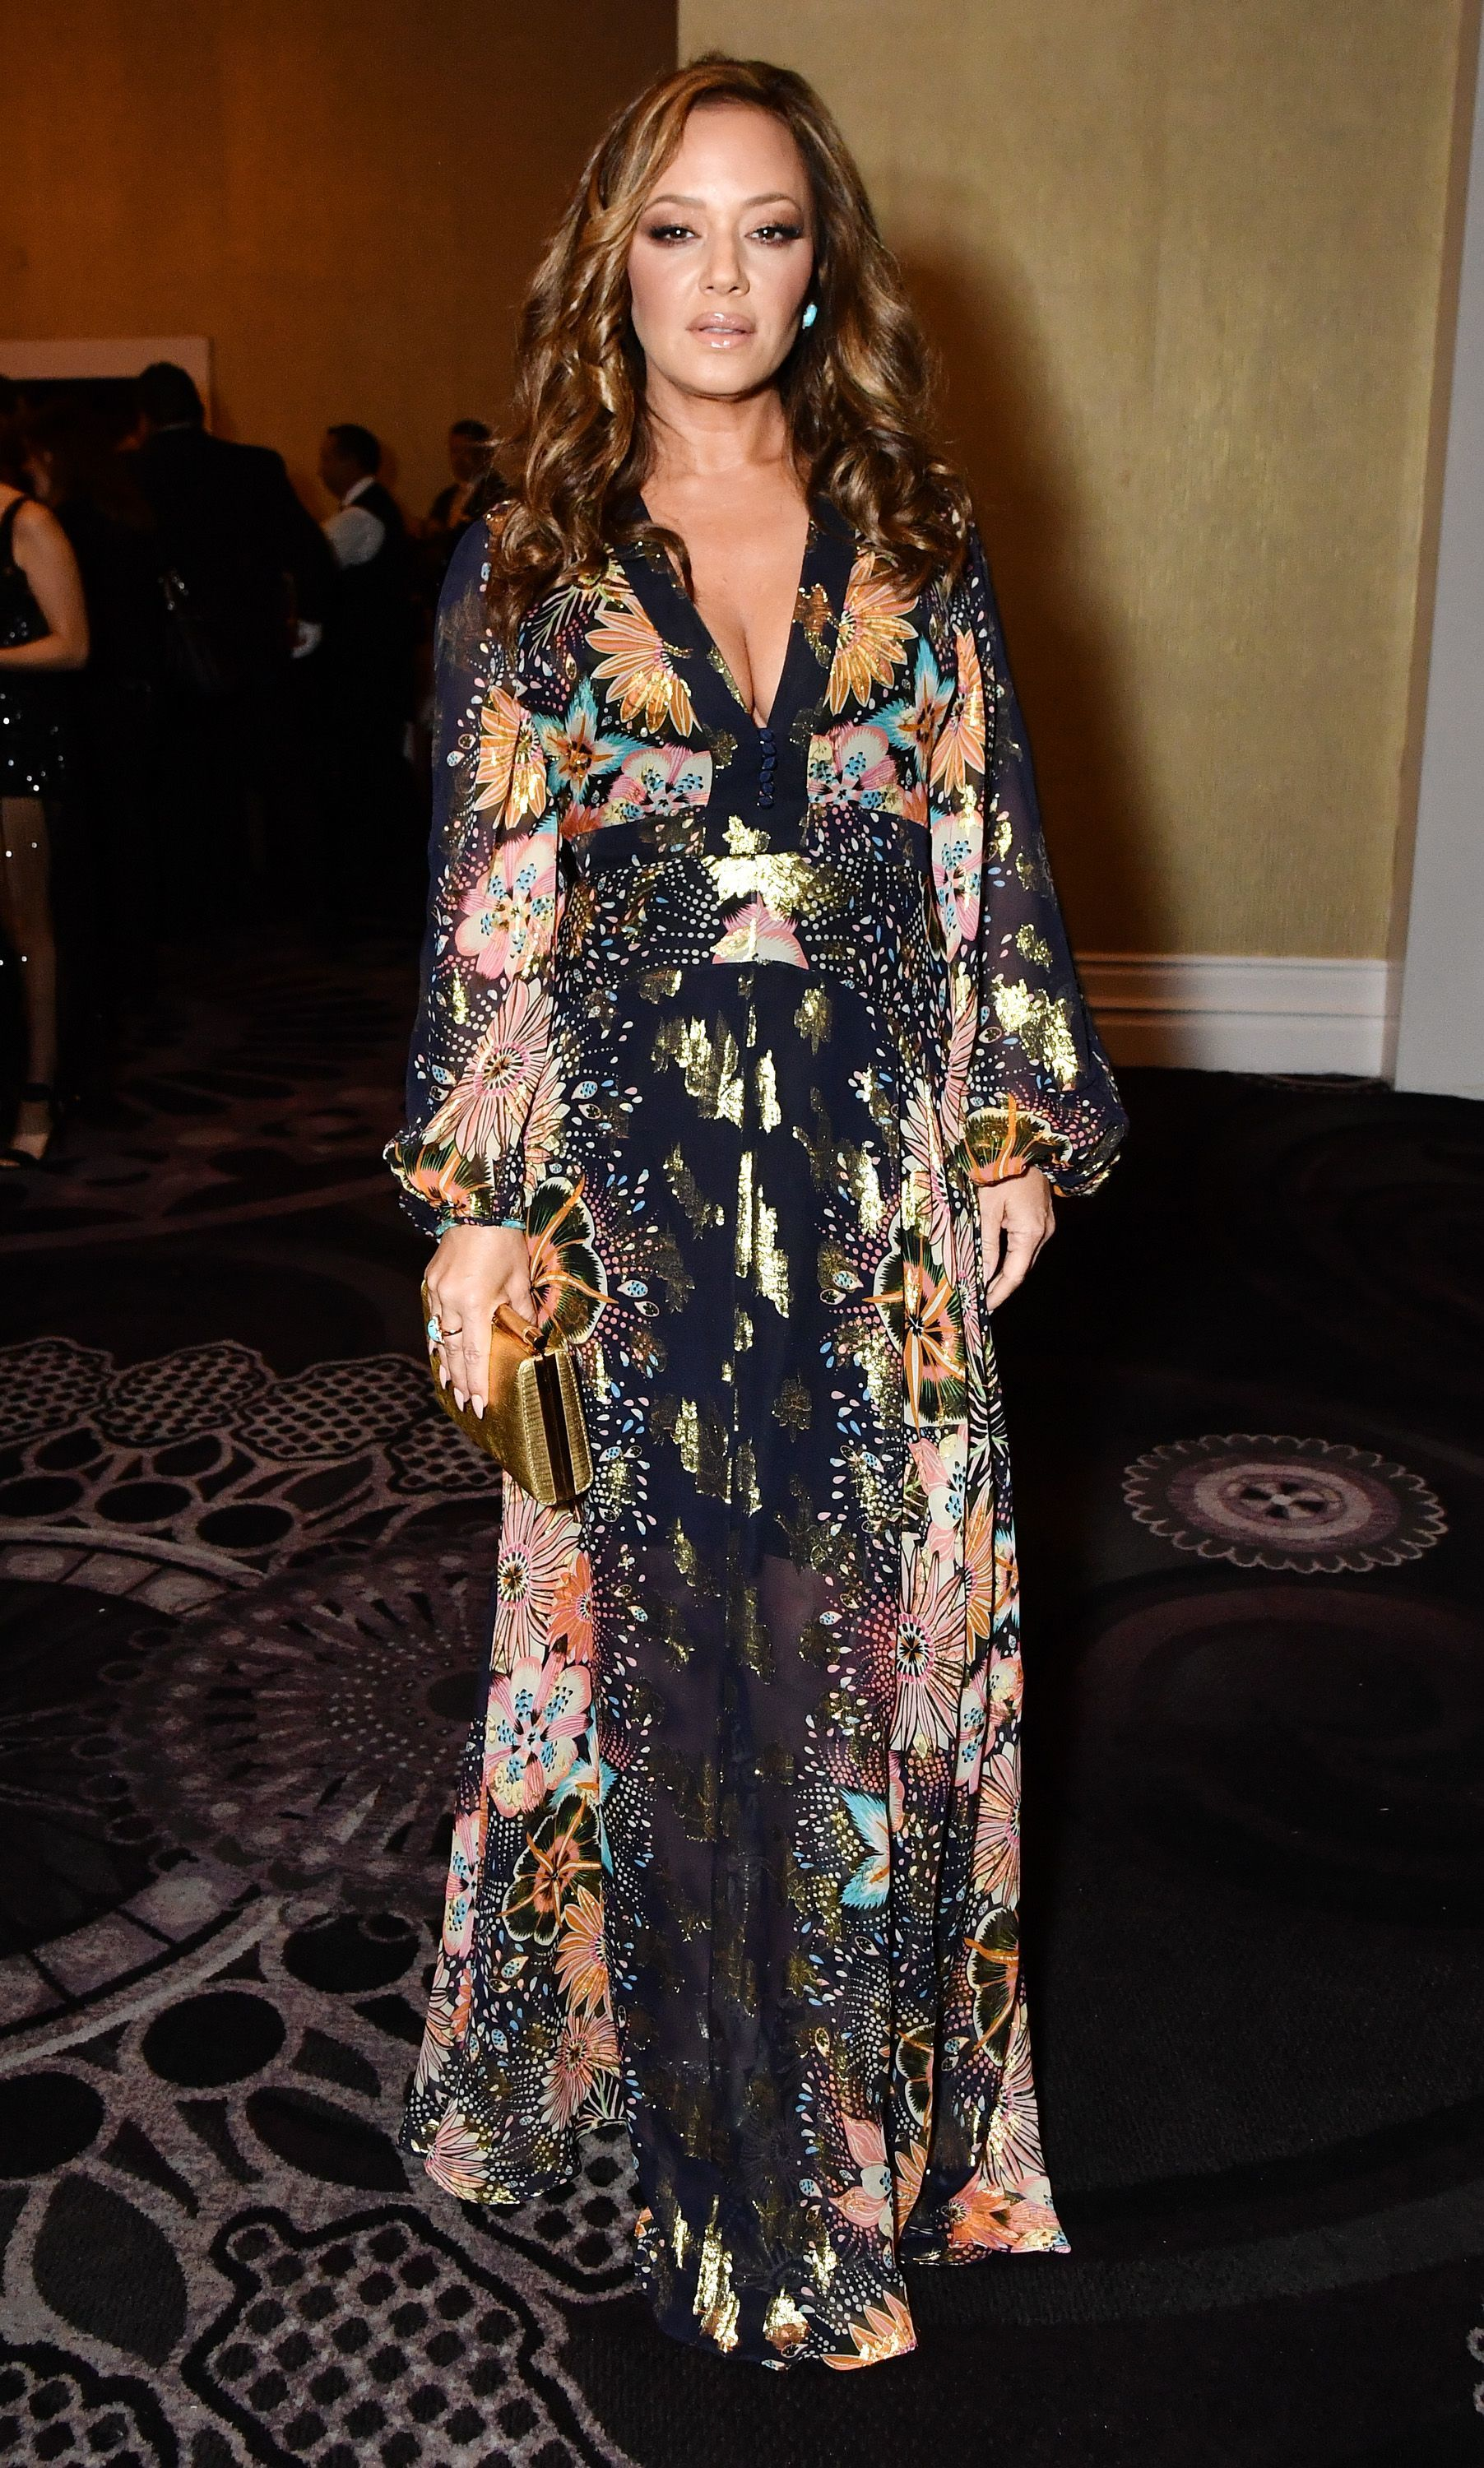 Leah Remini says Tom Cruise is not a good person